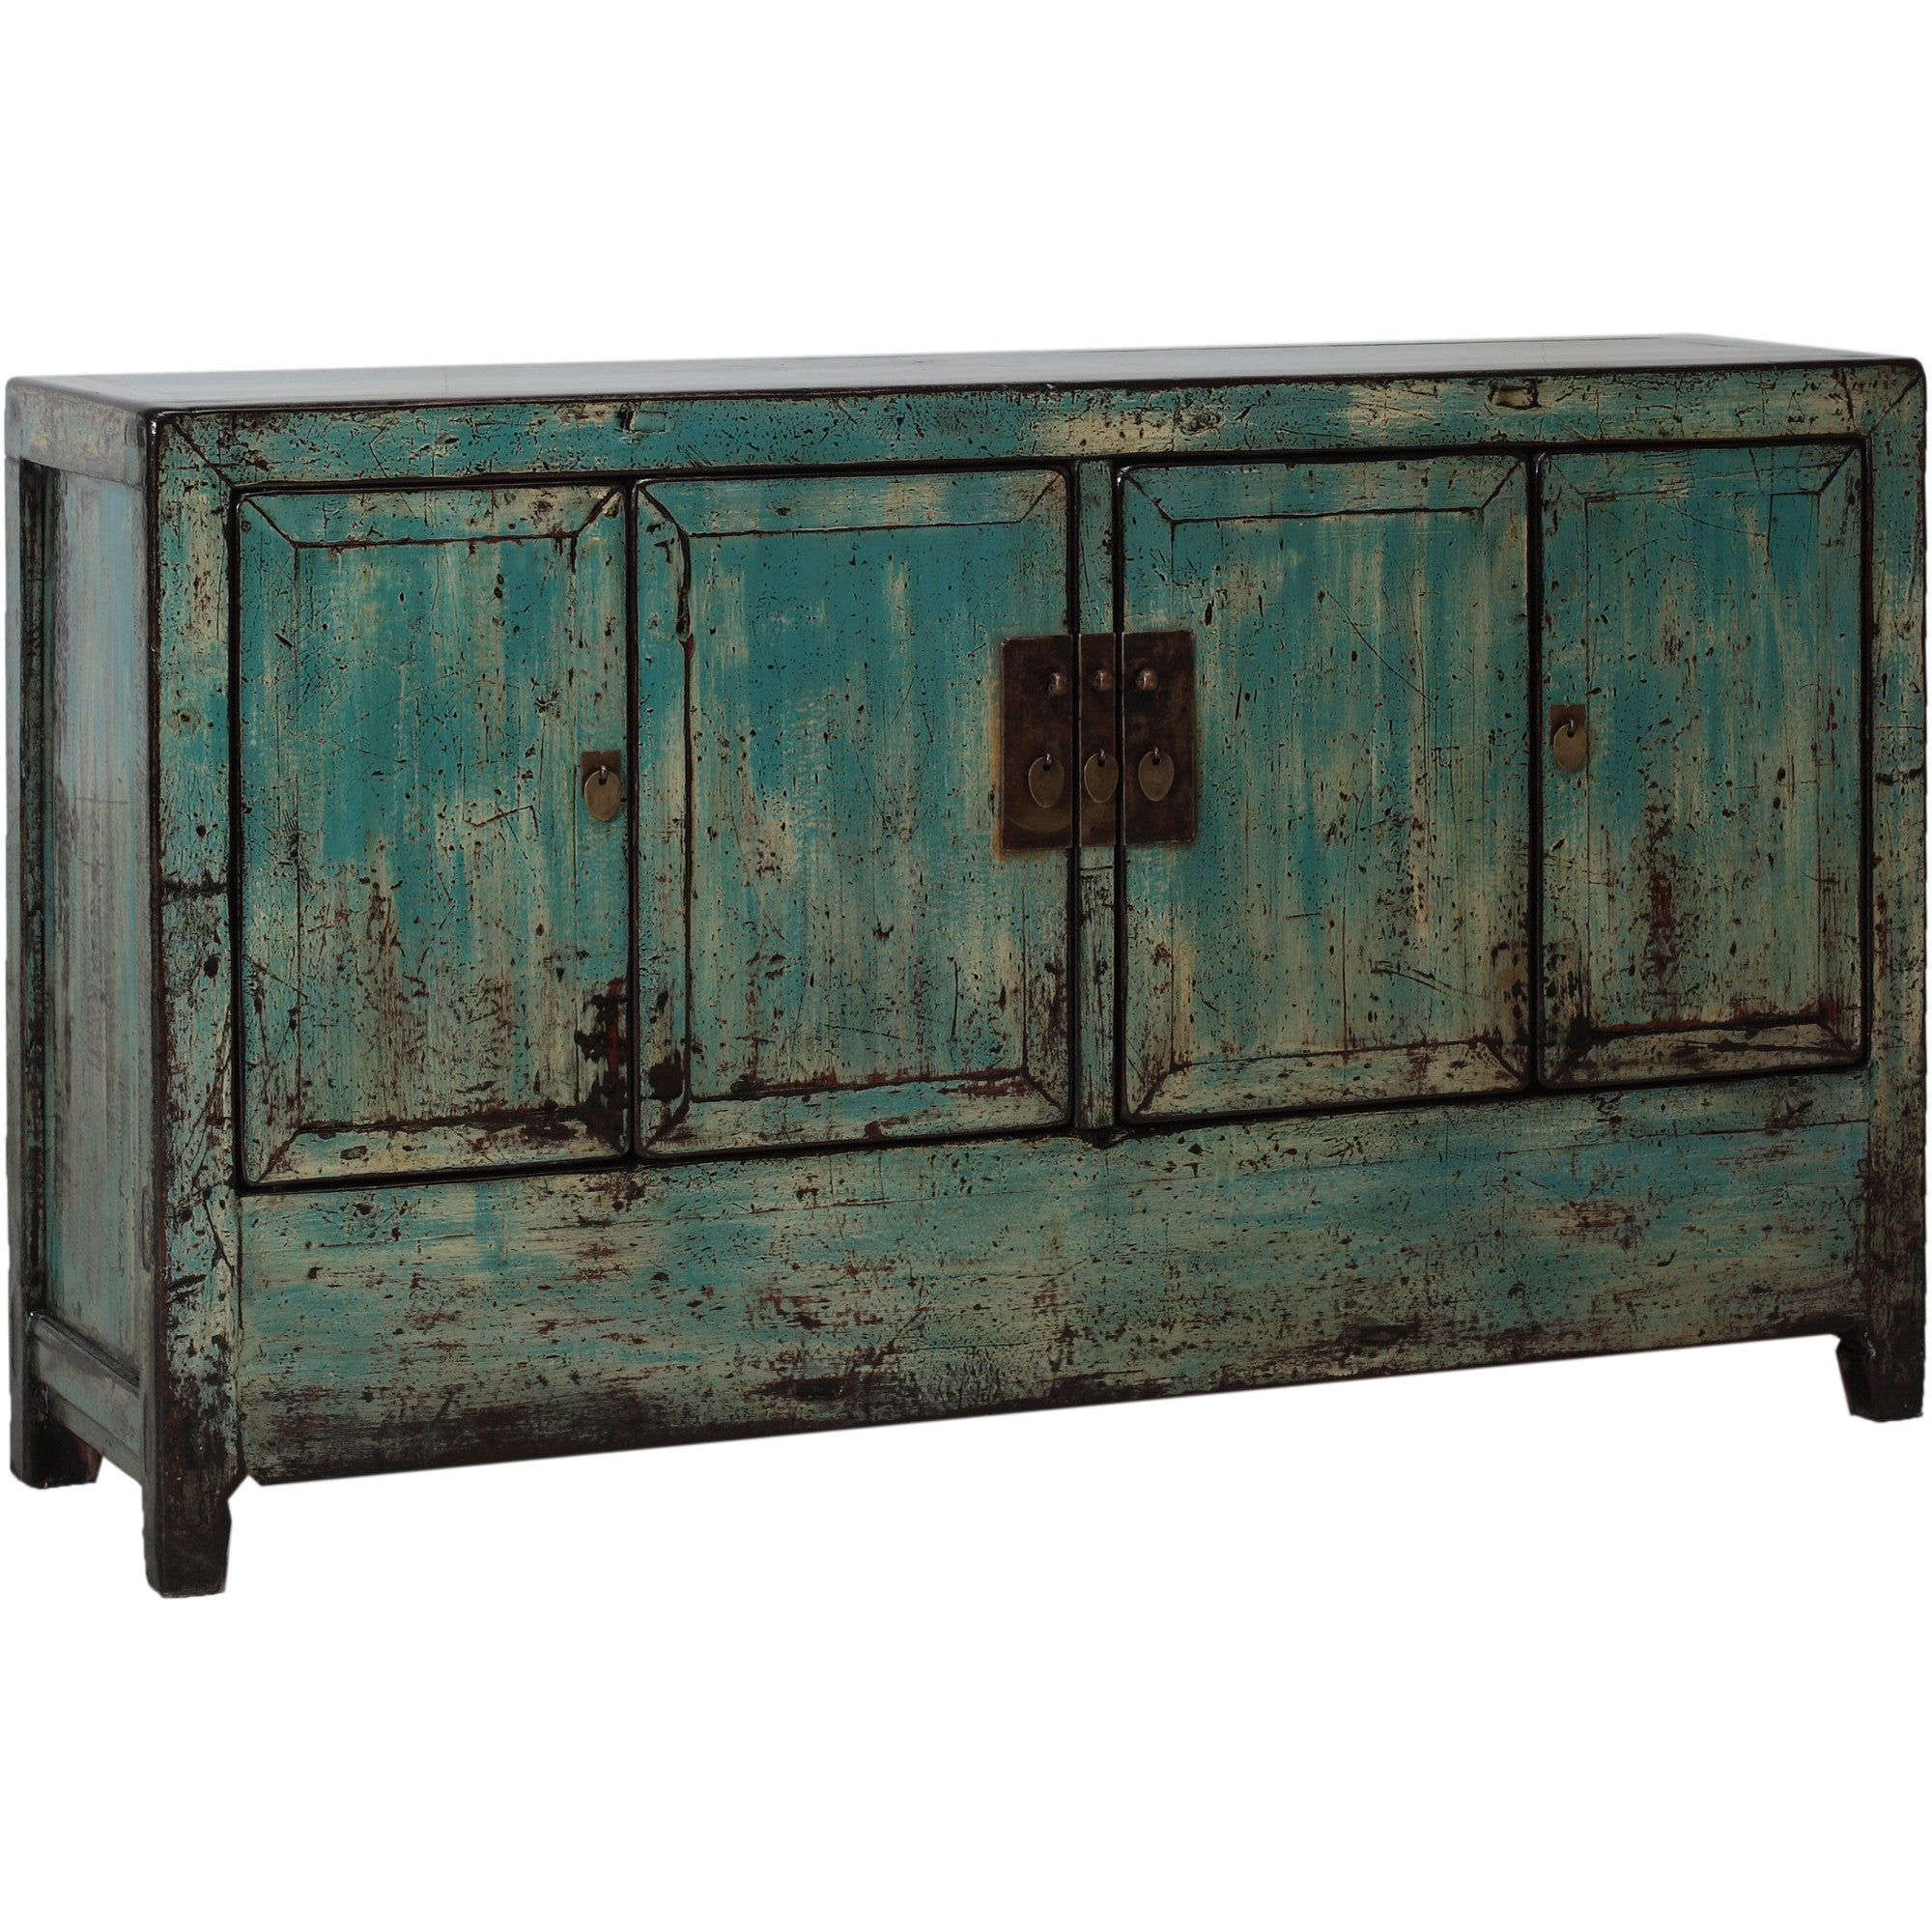 Blue Vintage Sideboard from Dongbei side view